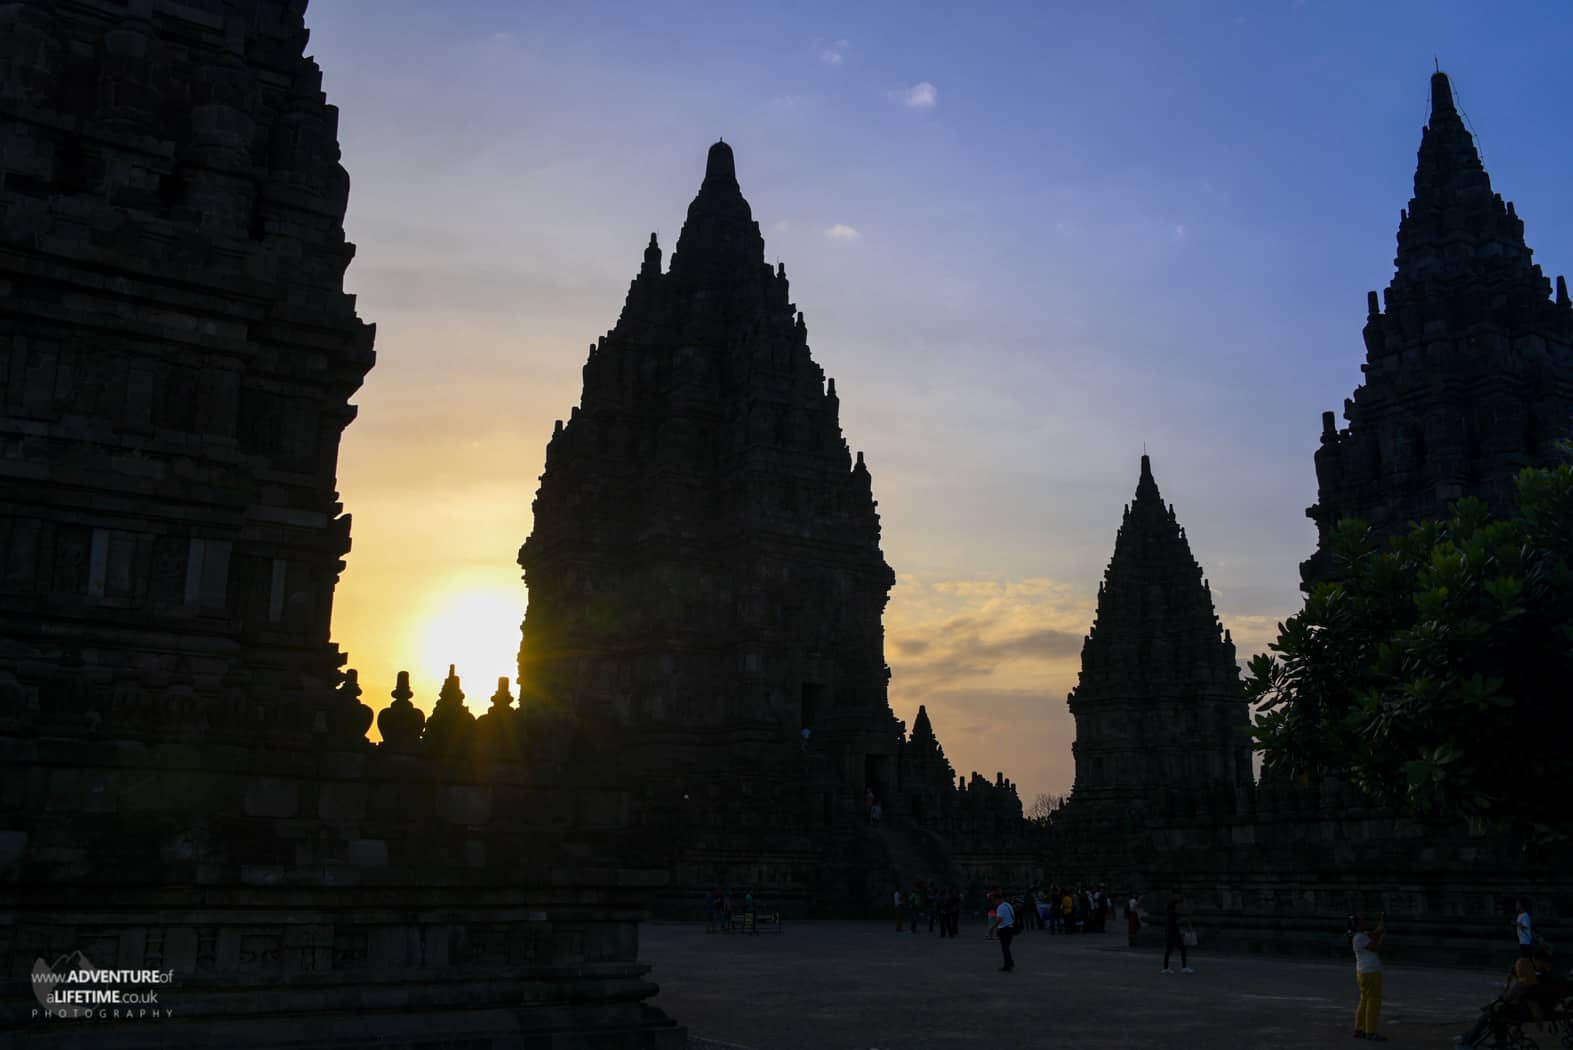 Intricate pillars of Prambanan temple, silhouetted at Sunset